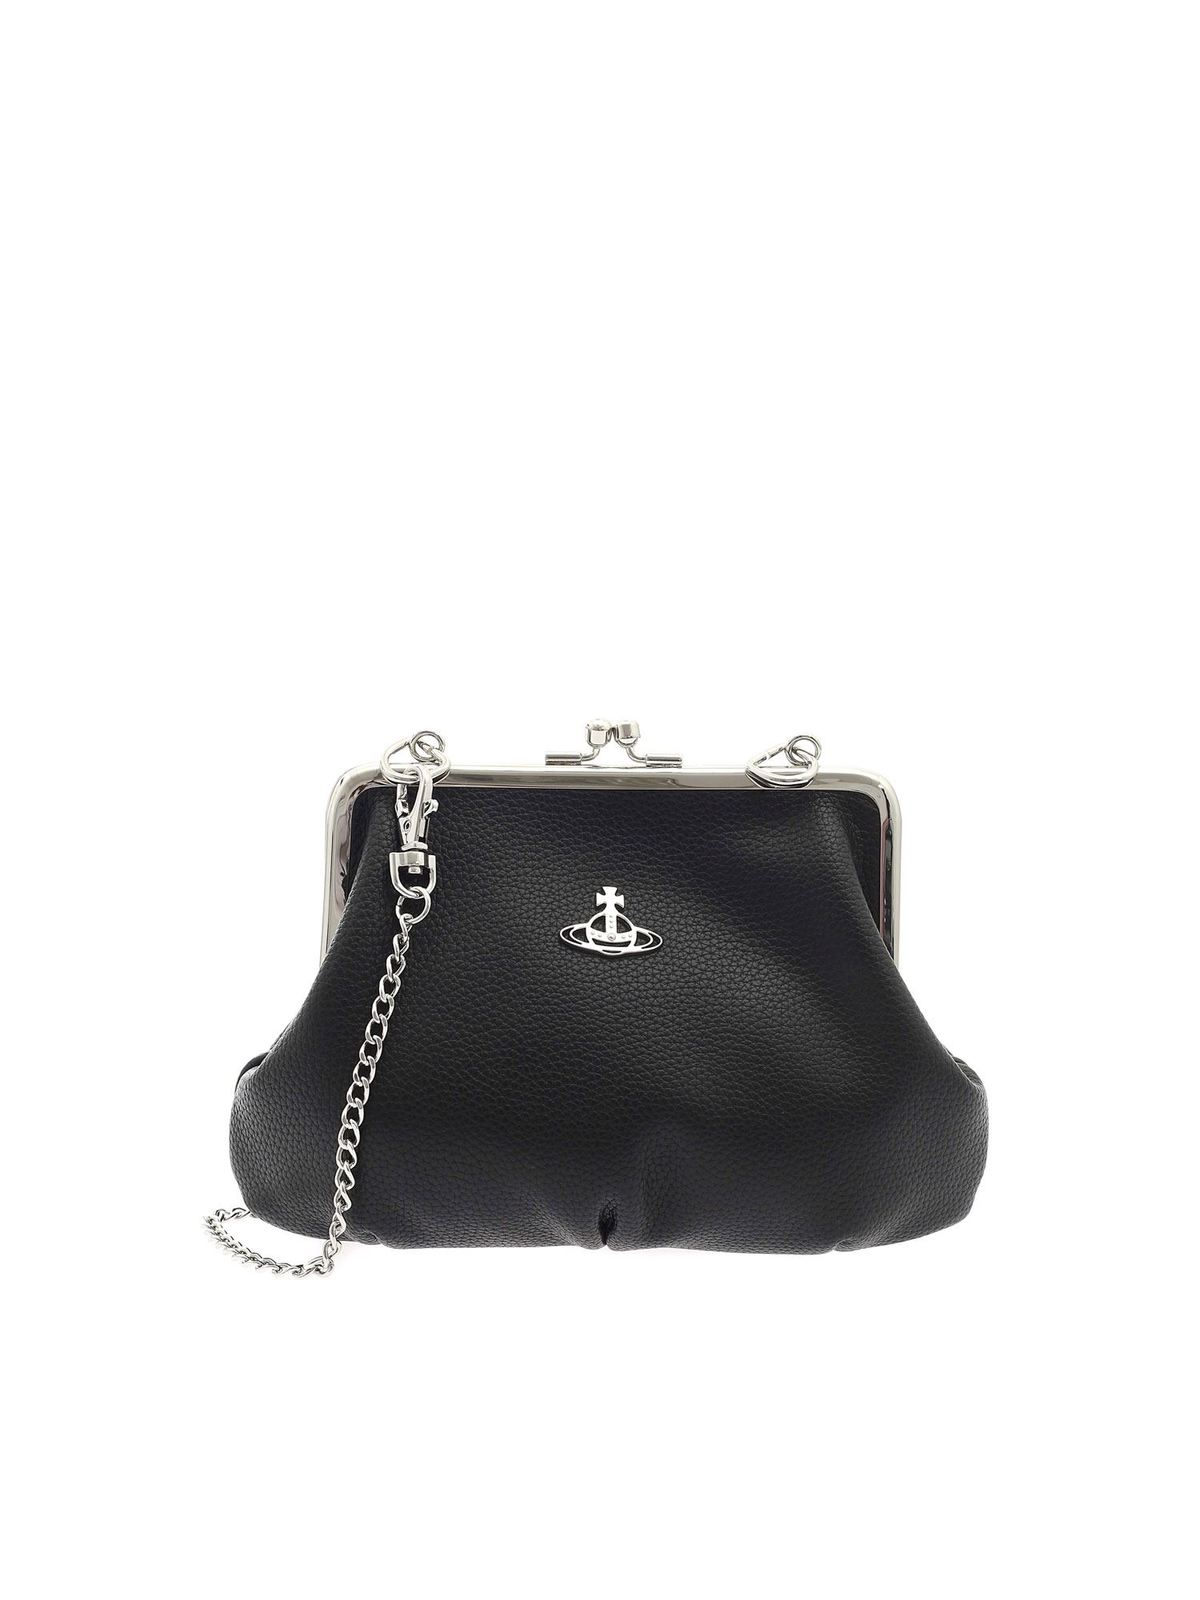 Vivienne Westwood JOHANNA FRAME BAG IN BLACK